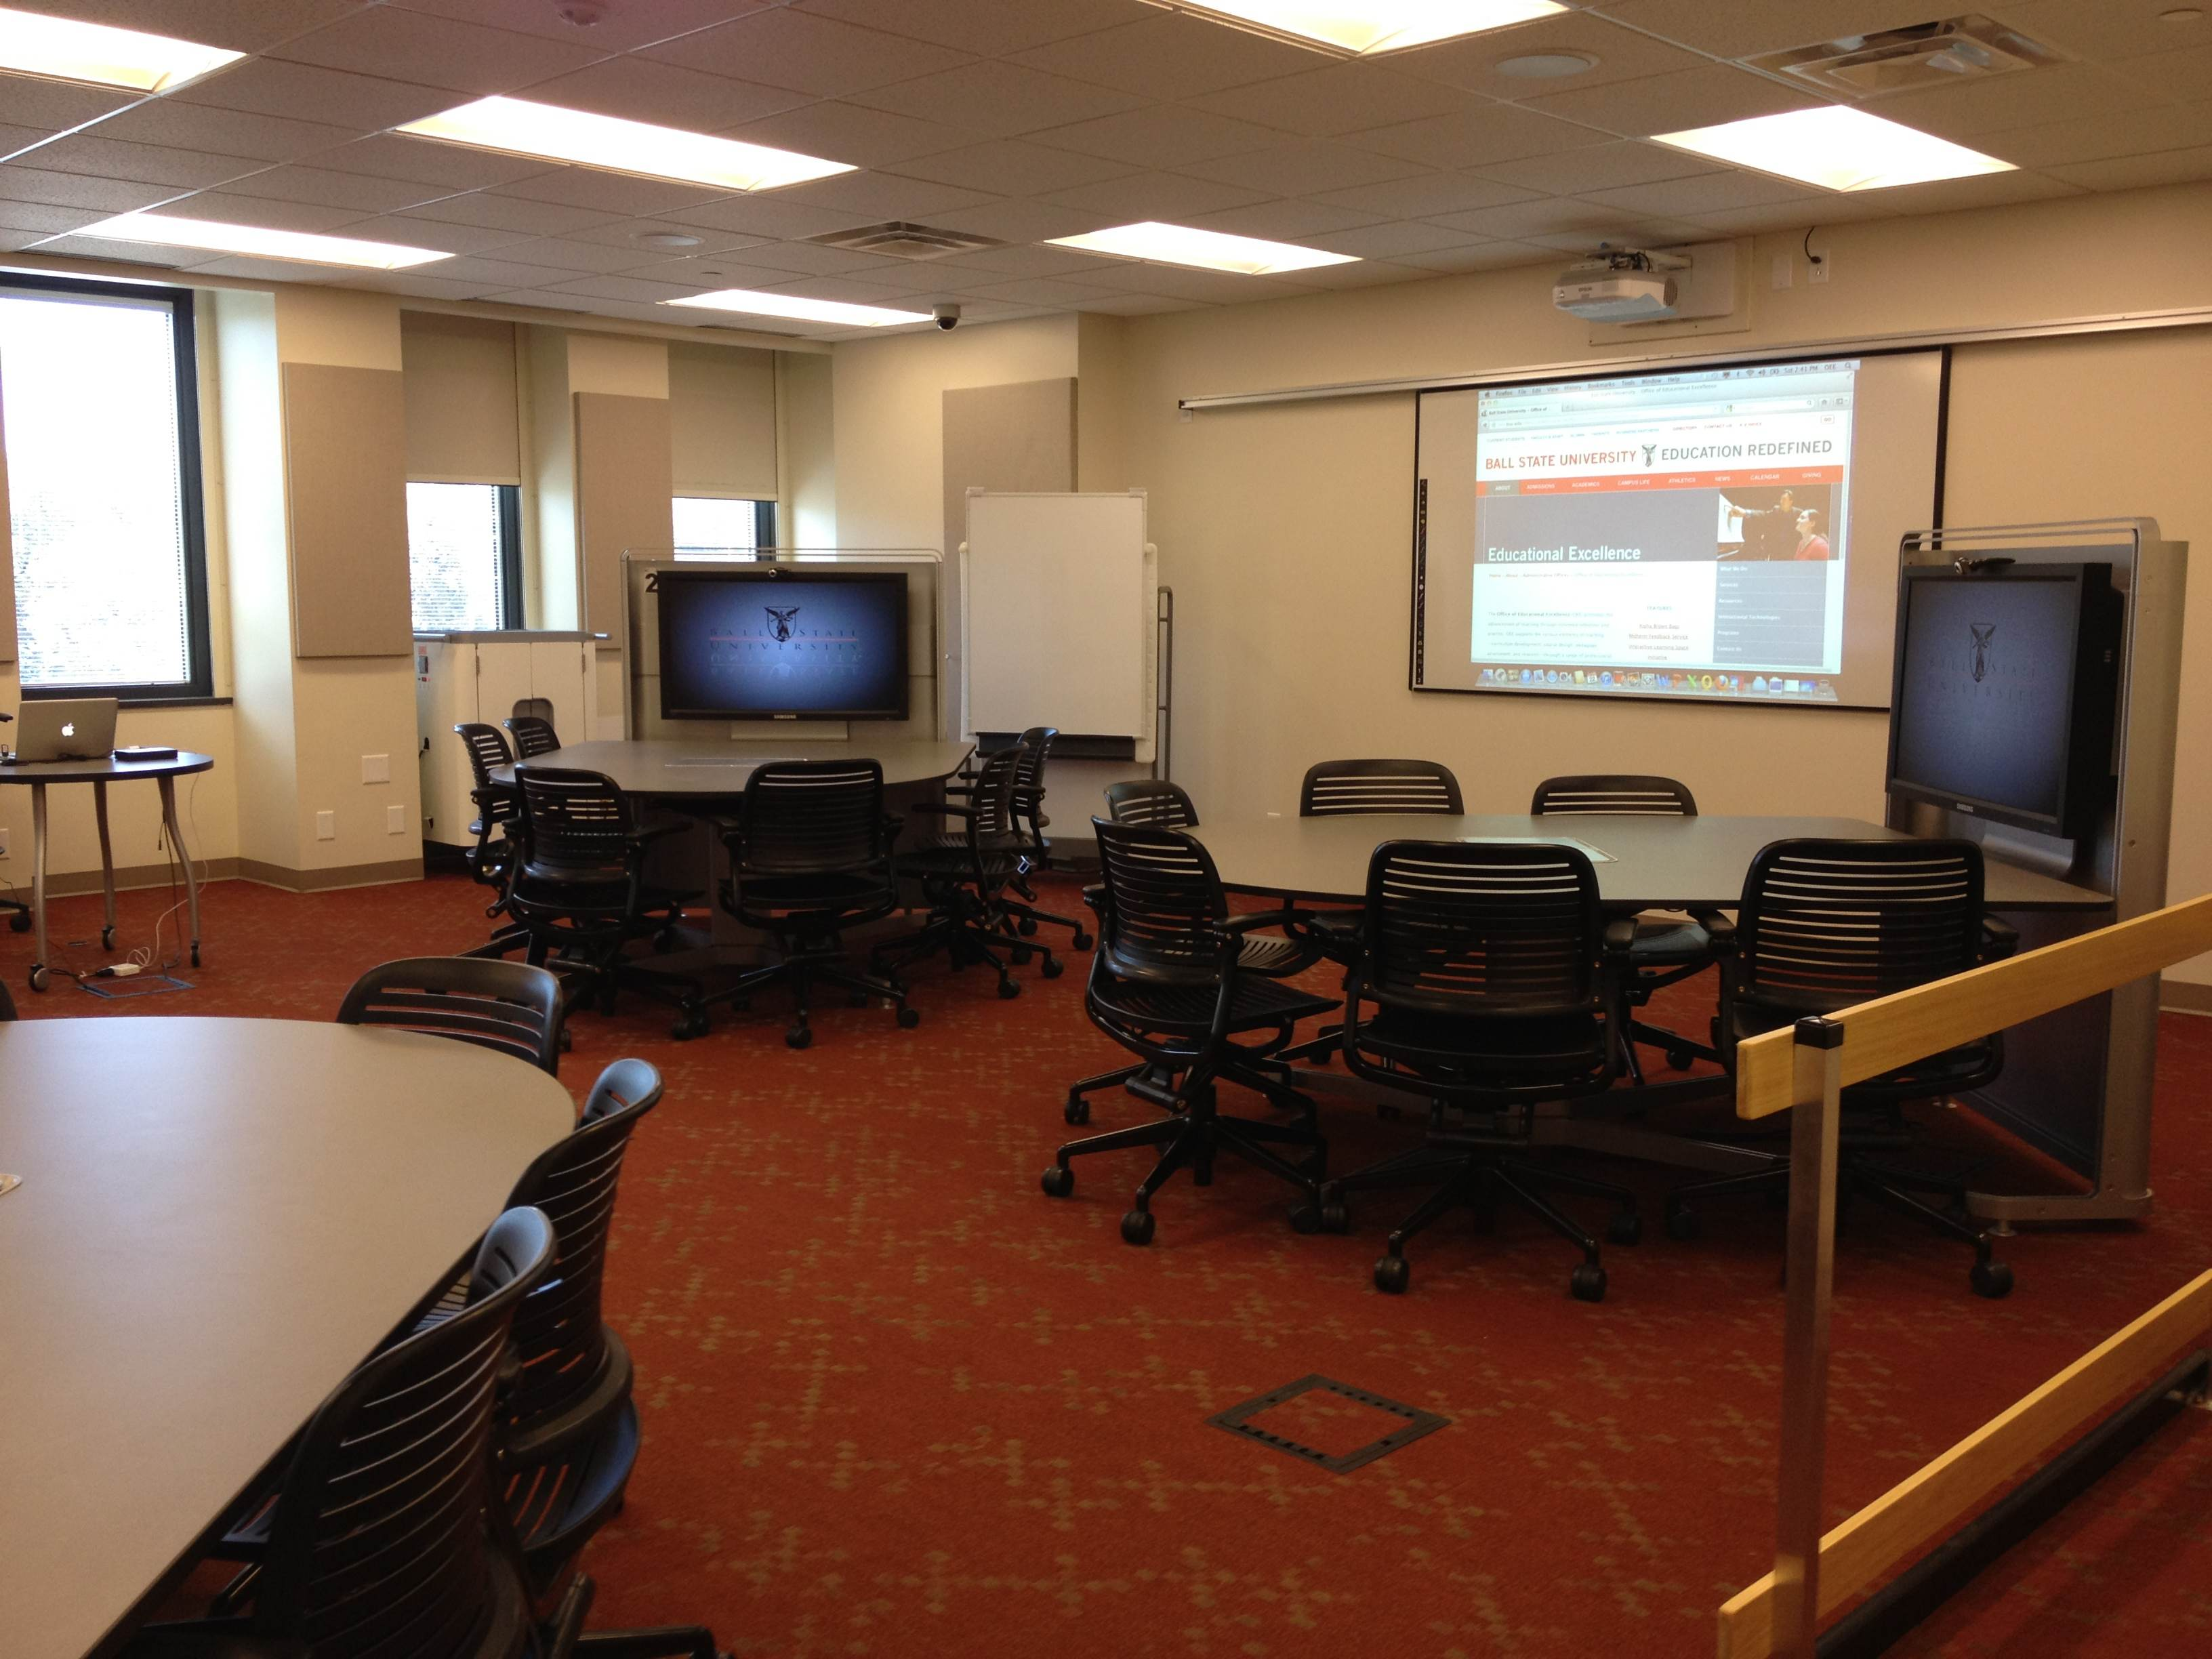 ball chairs for students roman chair abs 'interactive learning spaces' at the center of state u.'s faculty development program